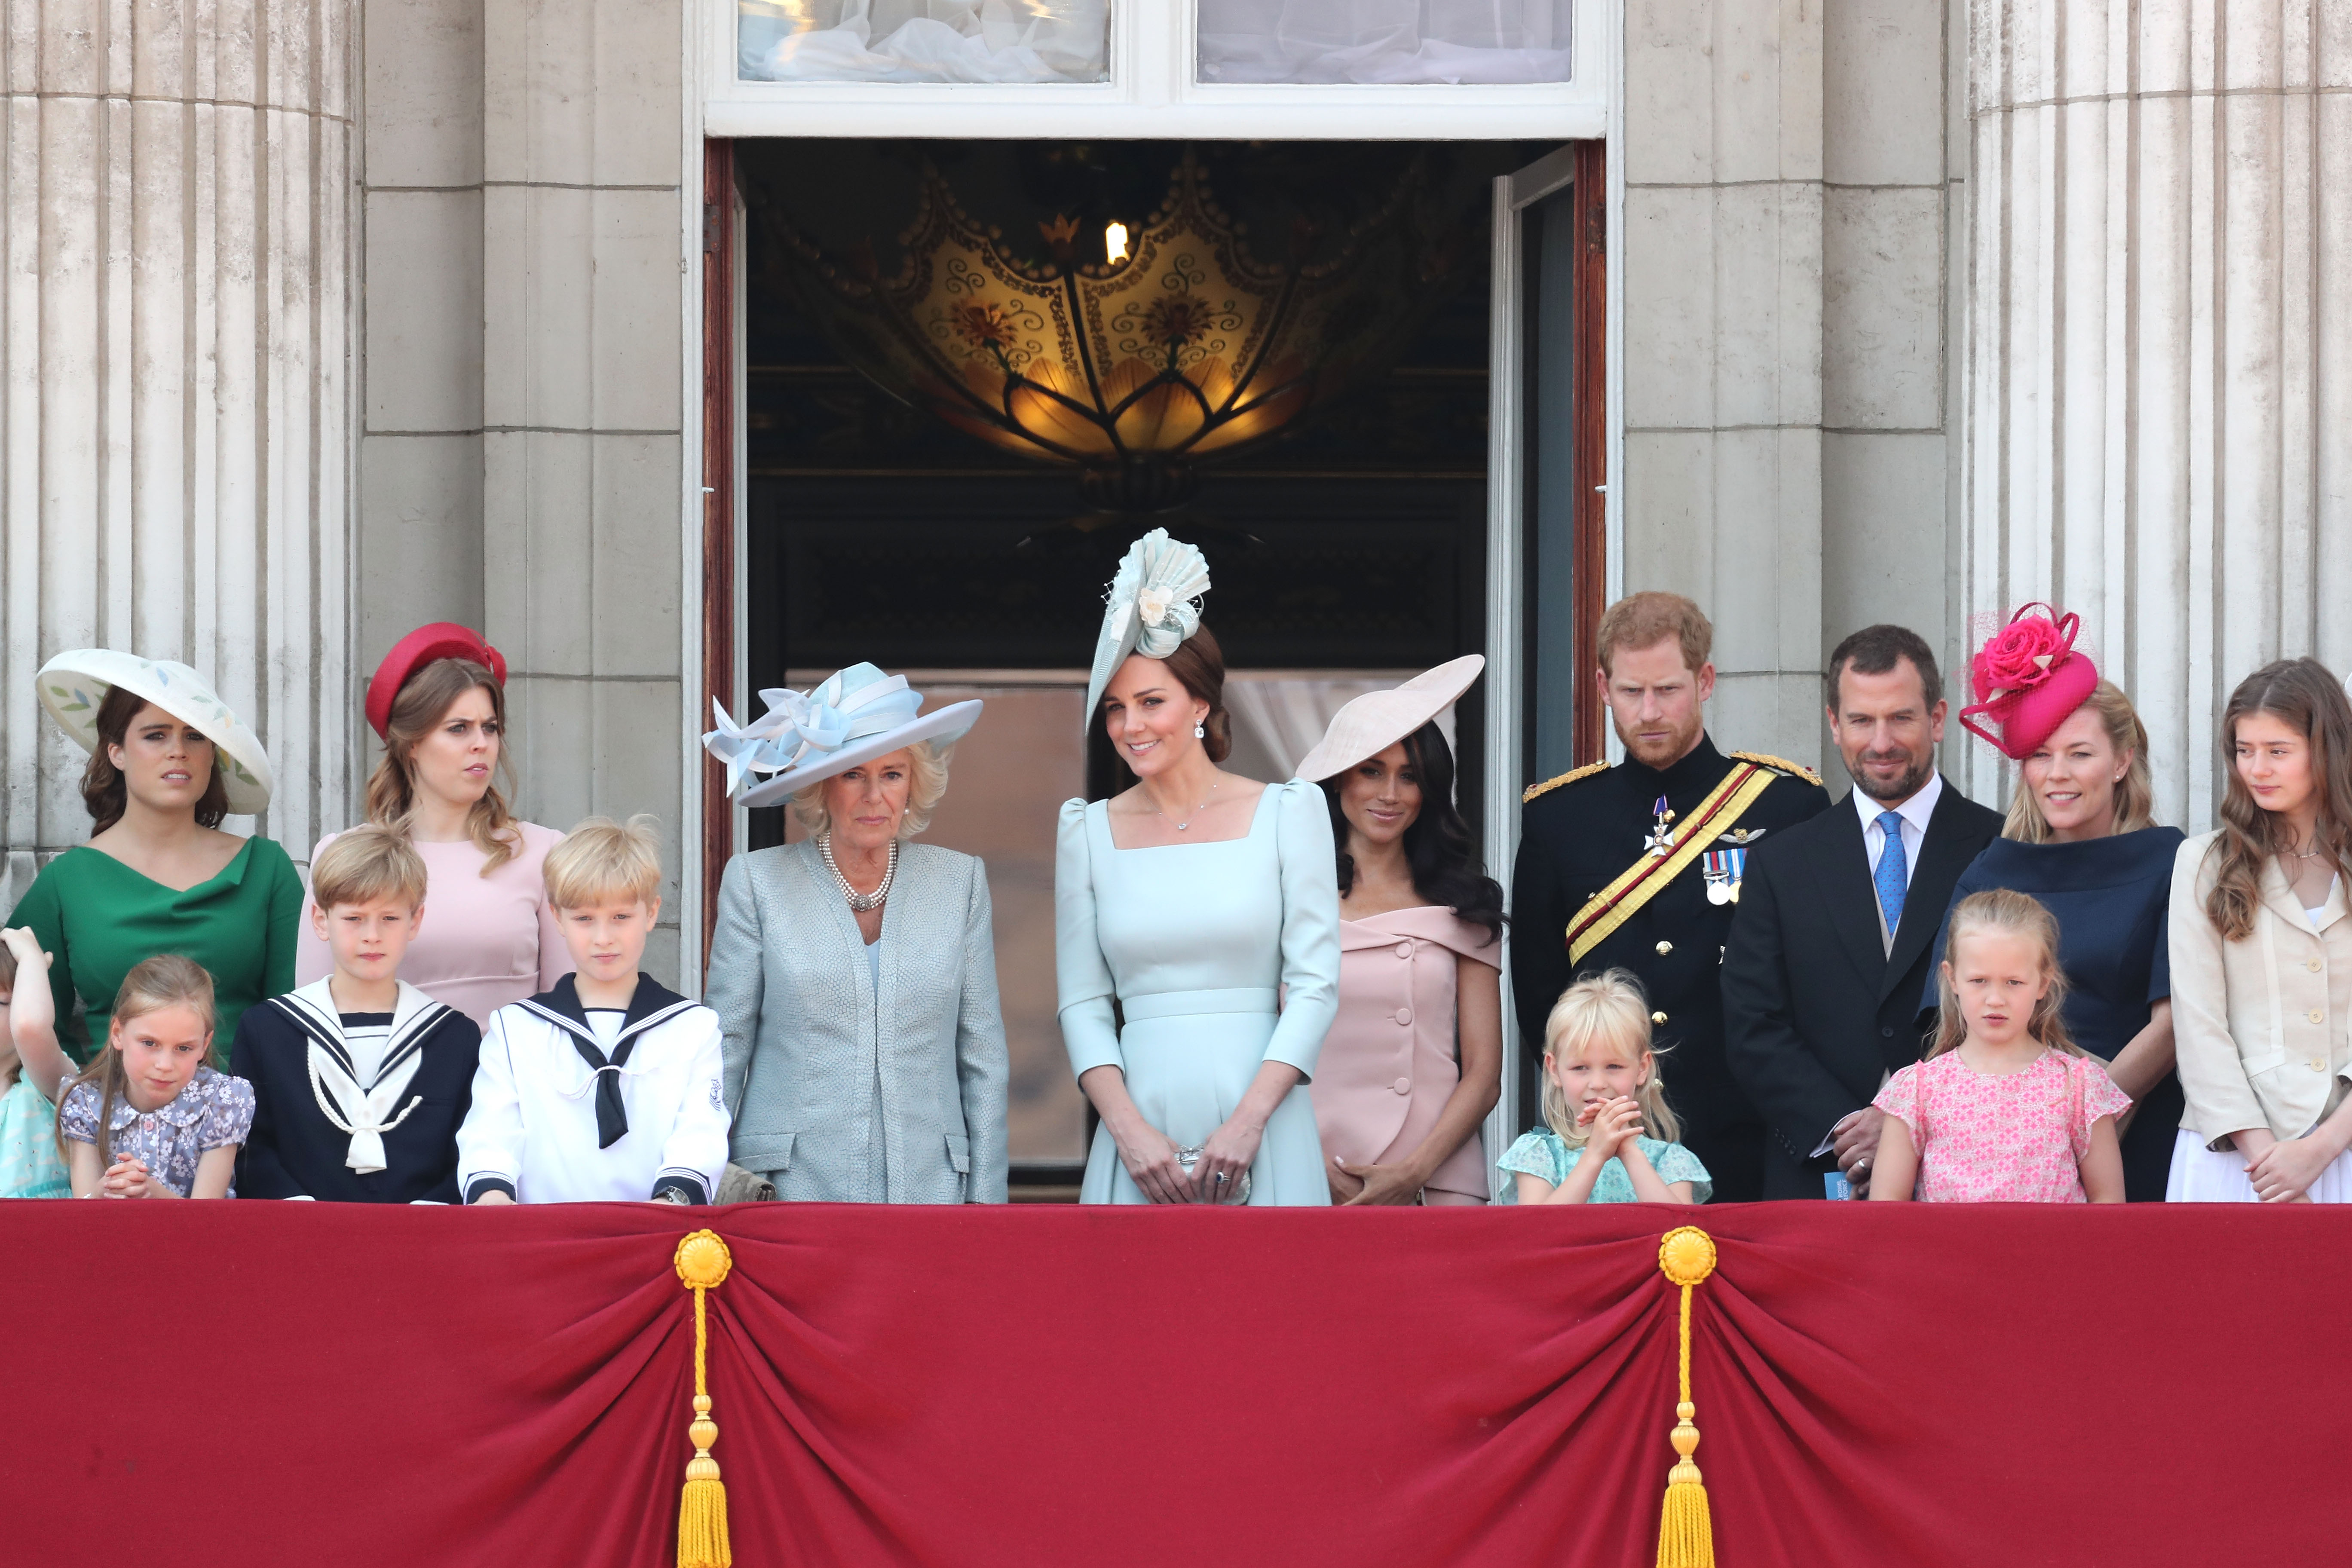 (From left to right) Princess Eugenie, Princess Beatrice, Camilla, Duchess Of Cornwall, Kate Middleton, Duchess of Cambridge, Meghan Markle, Duchess of Sussex, Prince Harry, Duke of Sussex, Peter Phillips, Autumn Phillips, Isla Phillips and Savannah Phillips on the balcony of Buckingham Palace during Trooping The Colour on June 9, 2018 in London, England